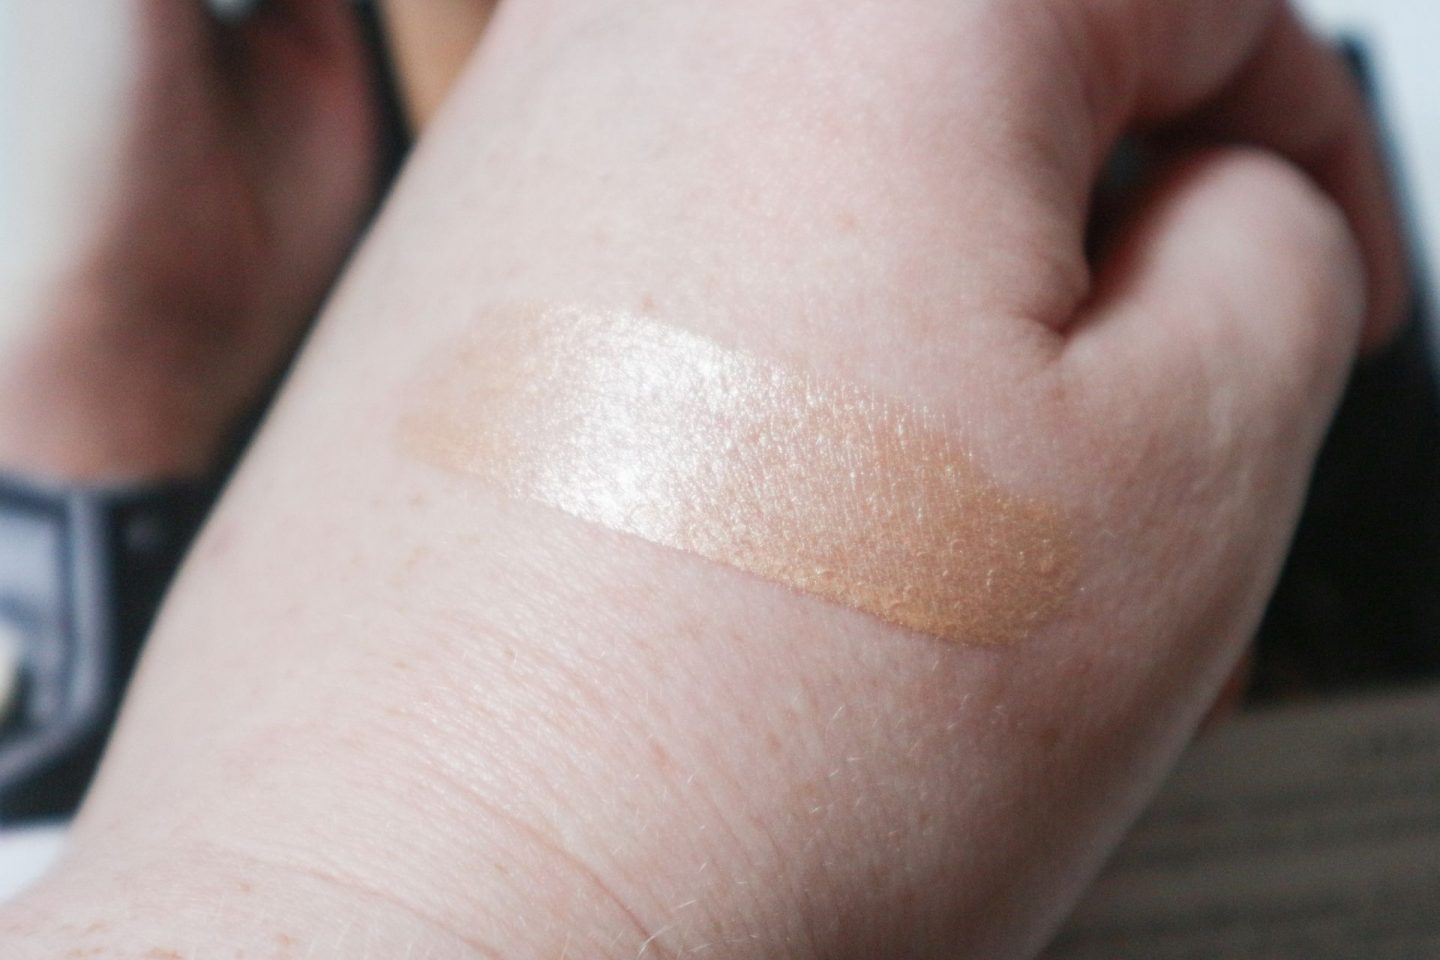 Charlotte Tilbury Beauty Light Wand in Spotlight swatch